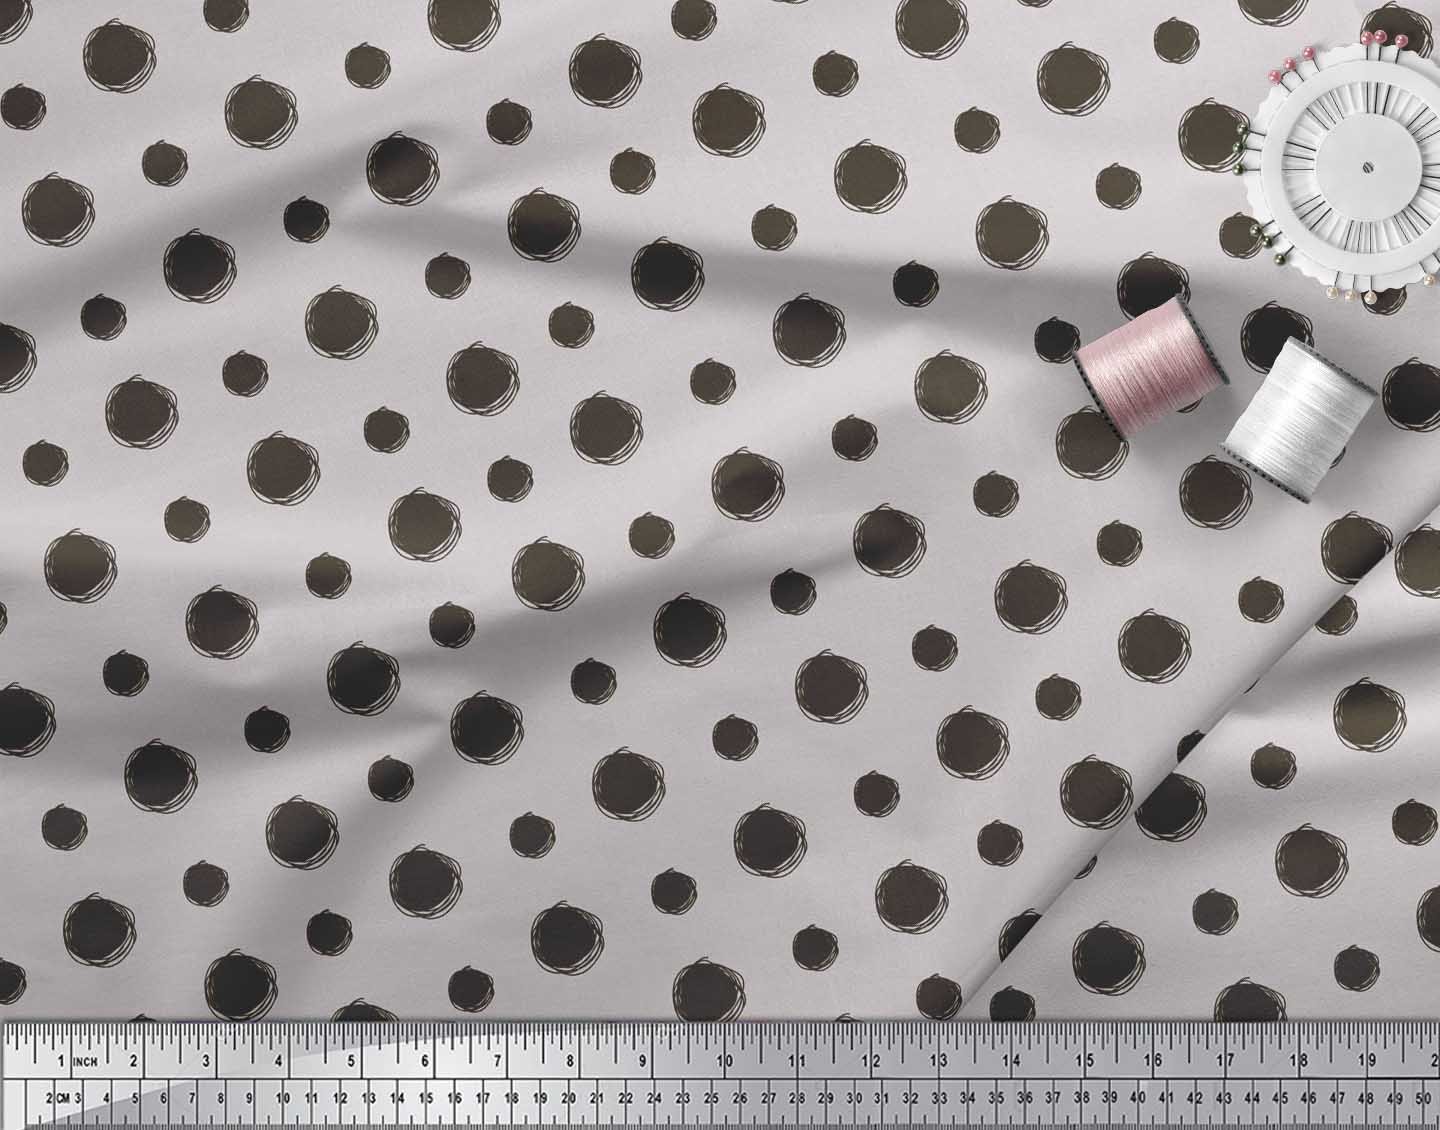 Soimoi-Cotton-Poplin-Fabric-Dots-Dots-Printed-Fabric-1-metre-42-xzp thumbnail 4